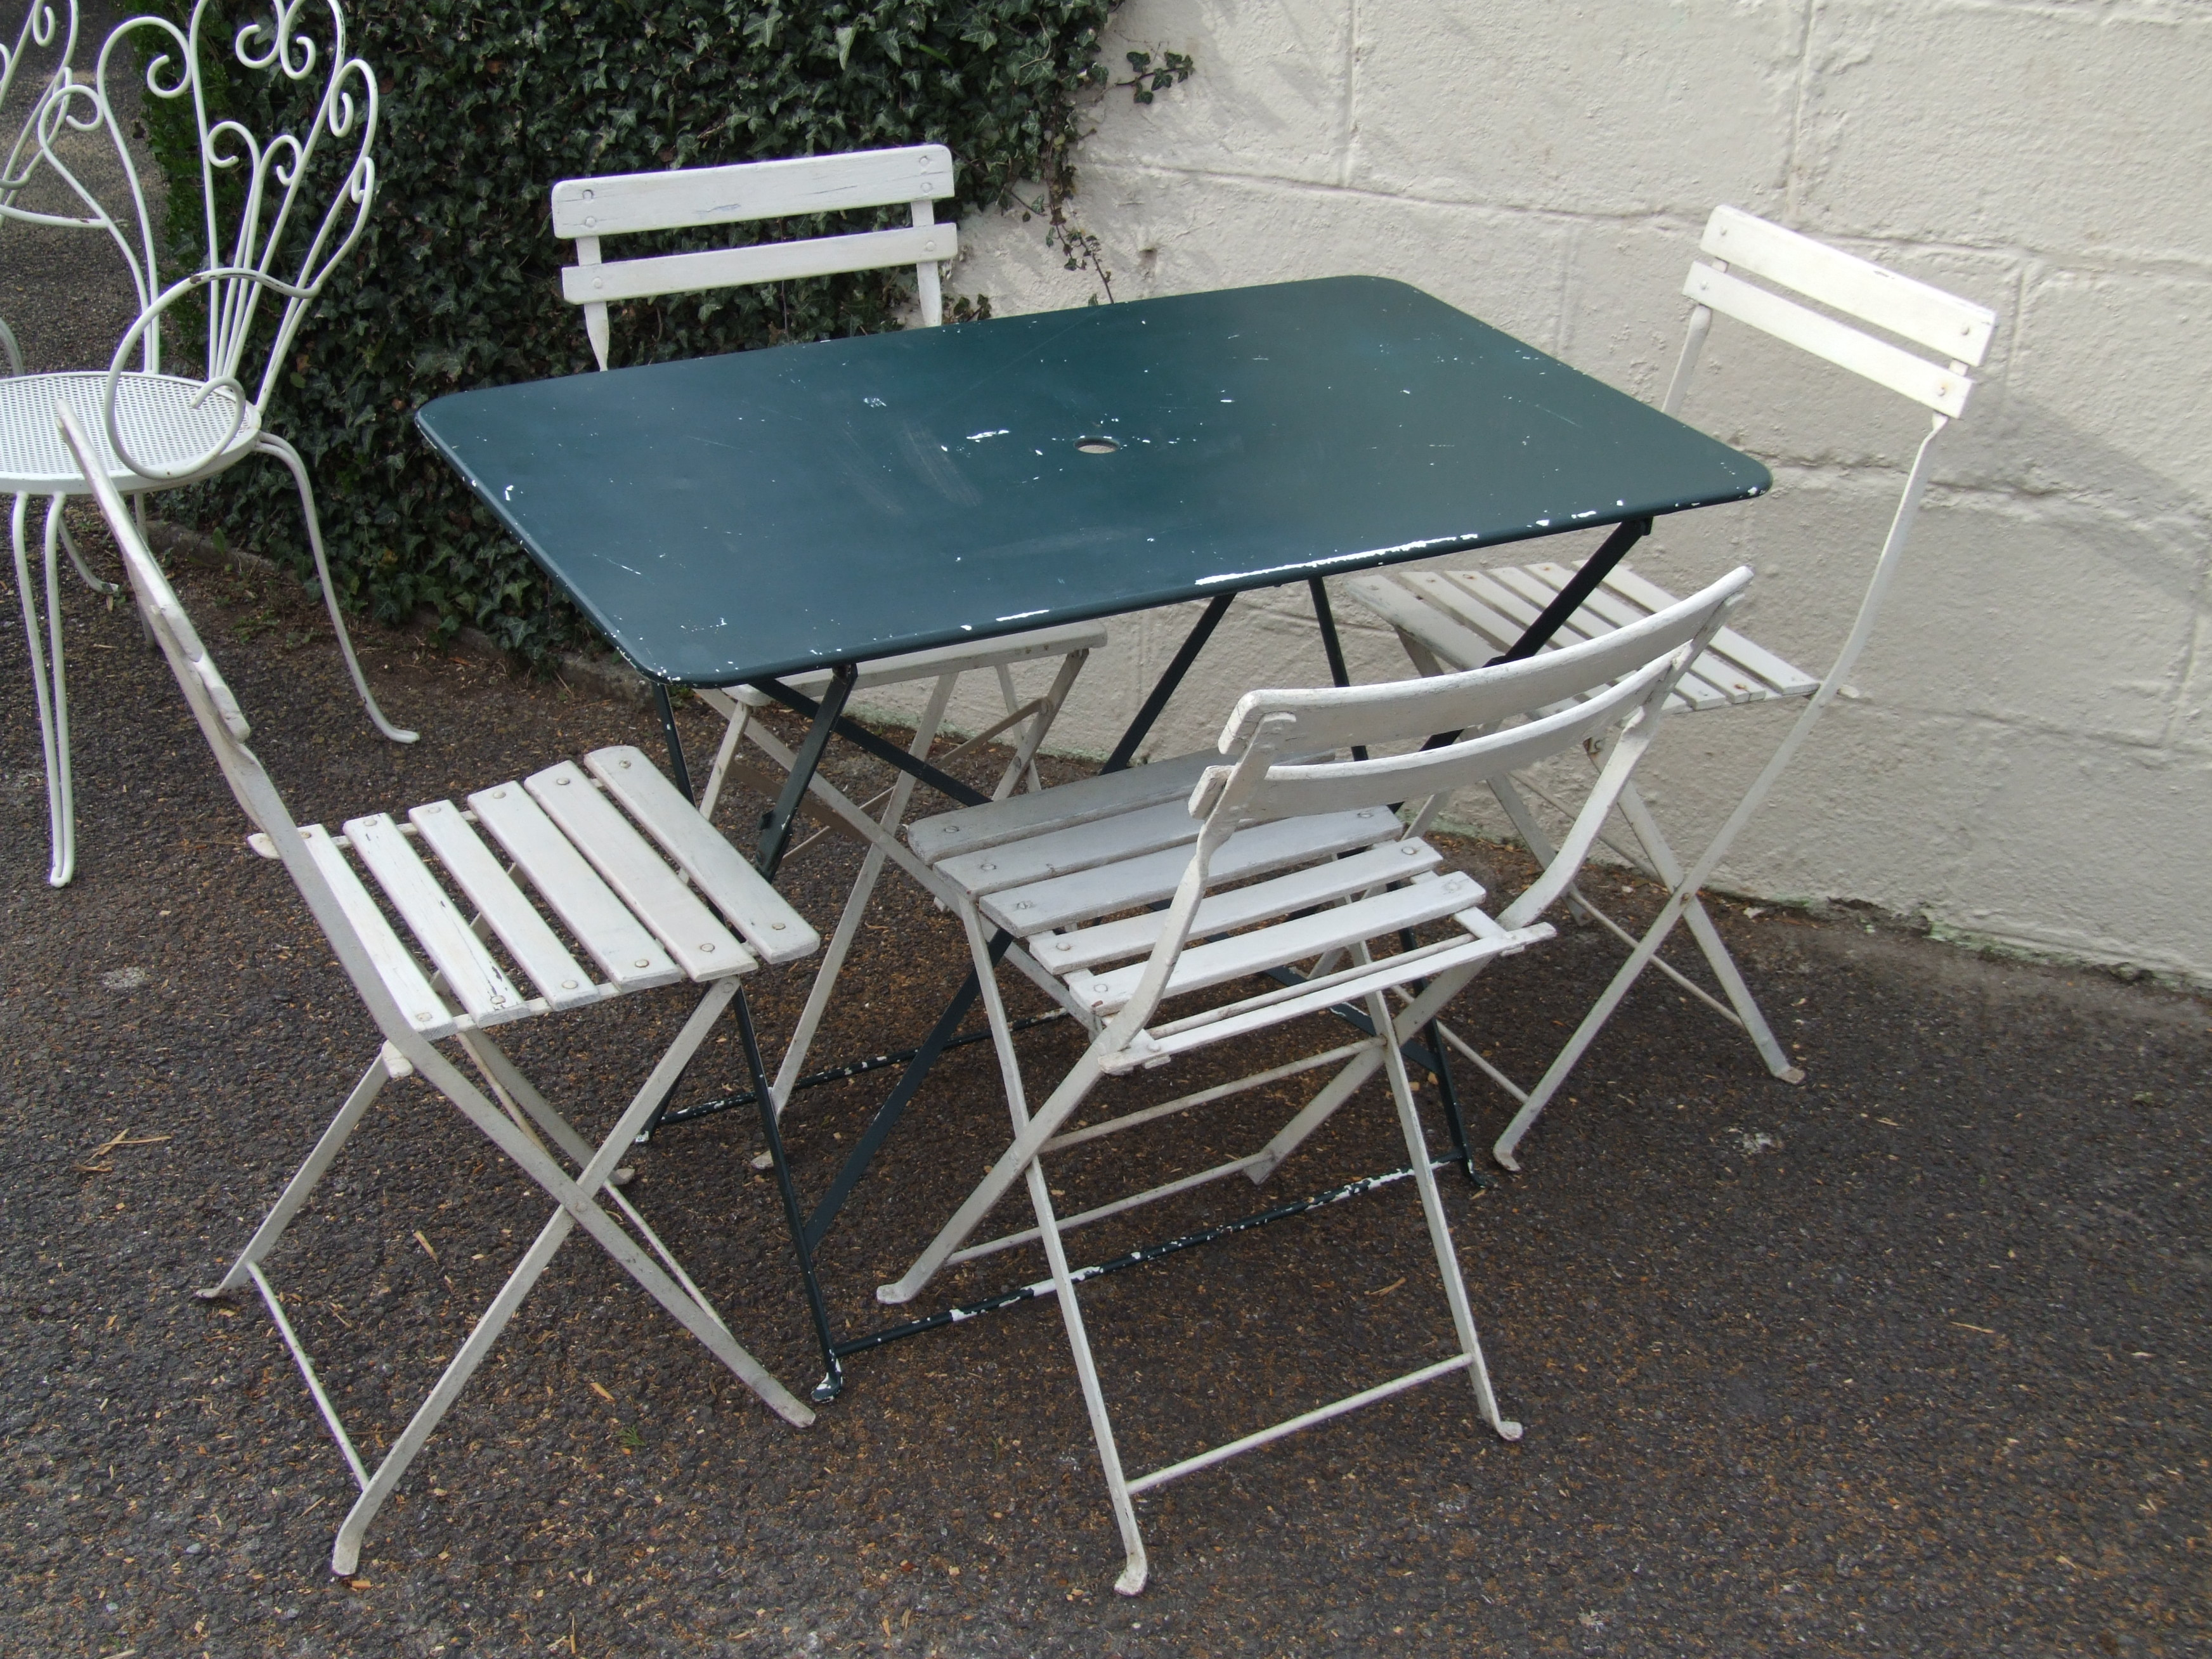 g084 s pair vintage french folding garden patio cafe chairs la